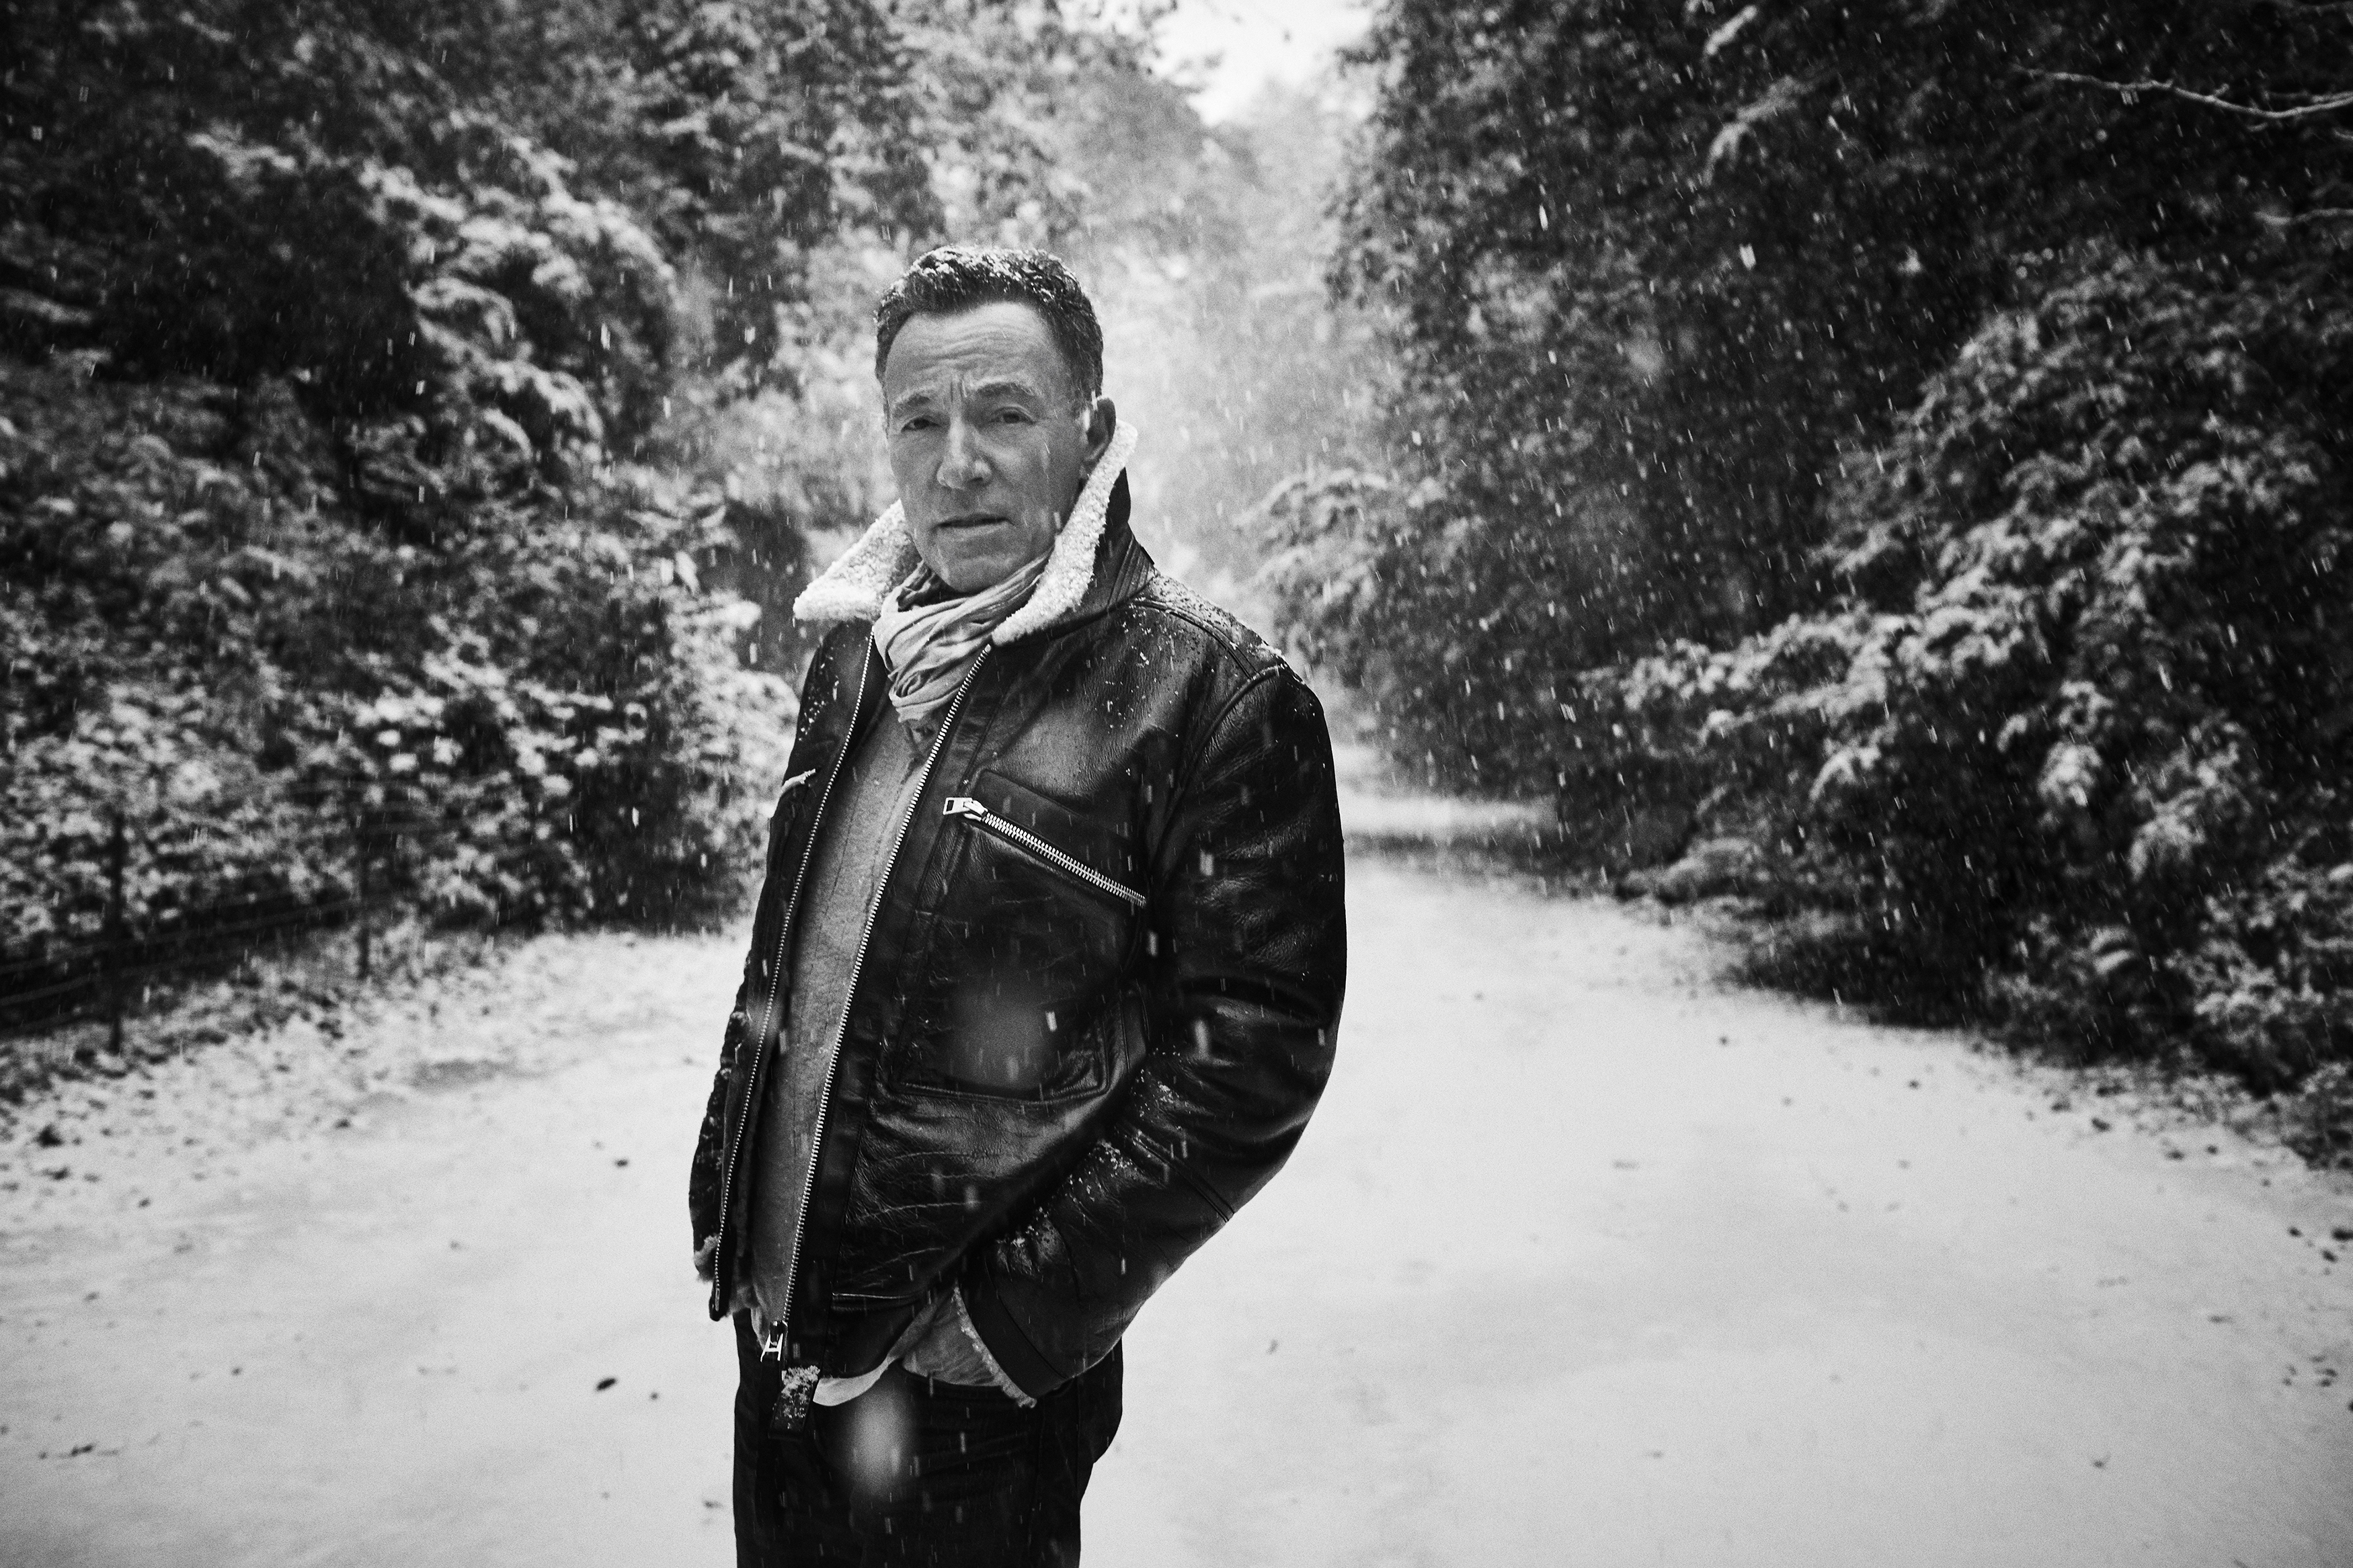 Bruce Springsteen's new album will include three never released songs from '70s